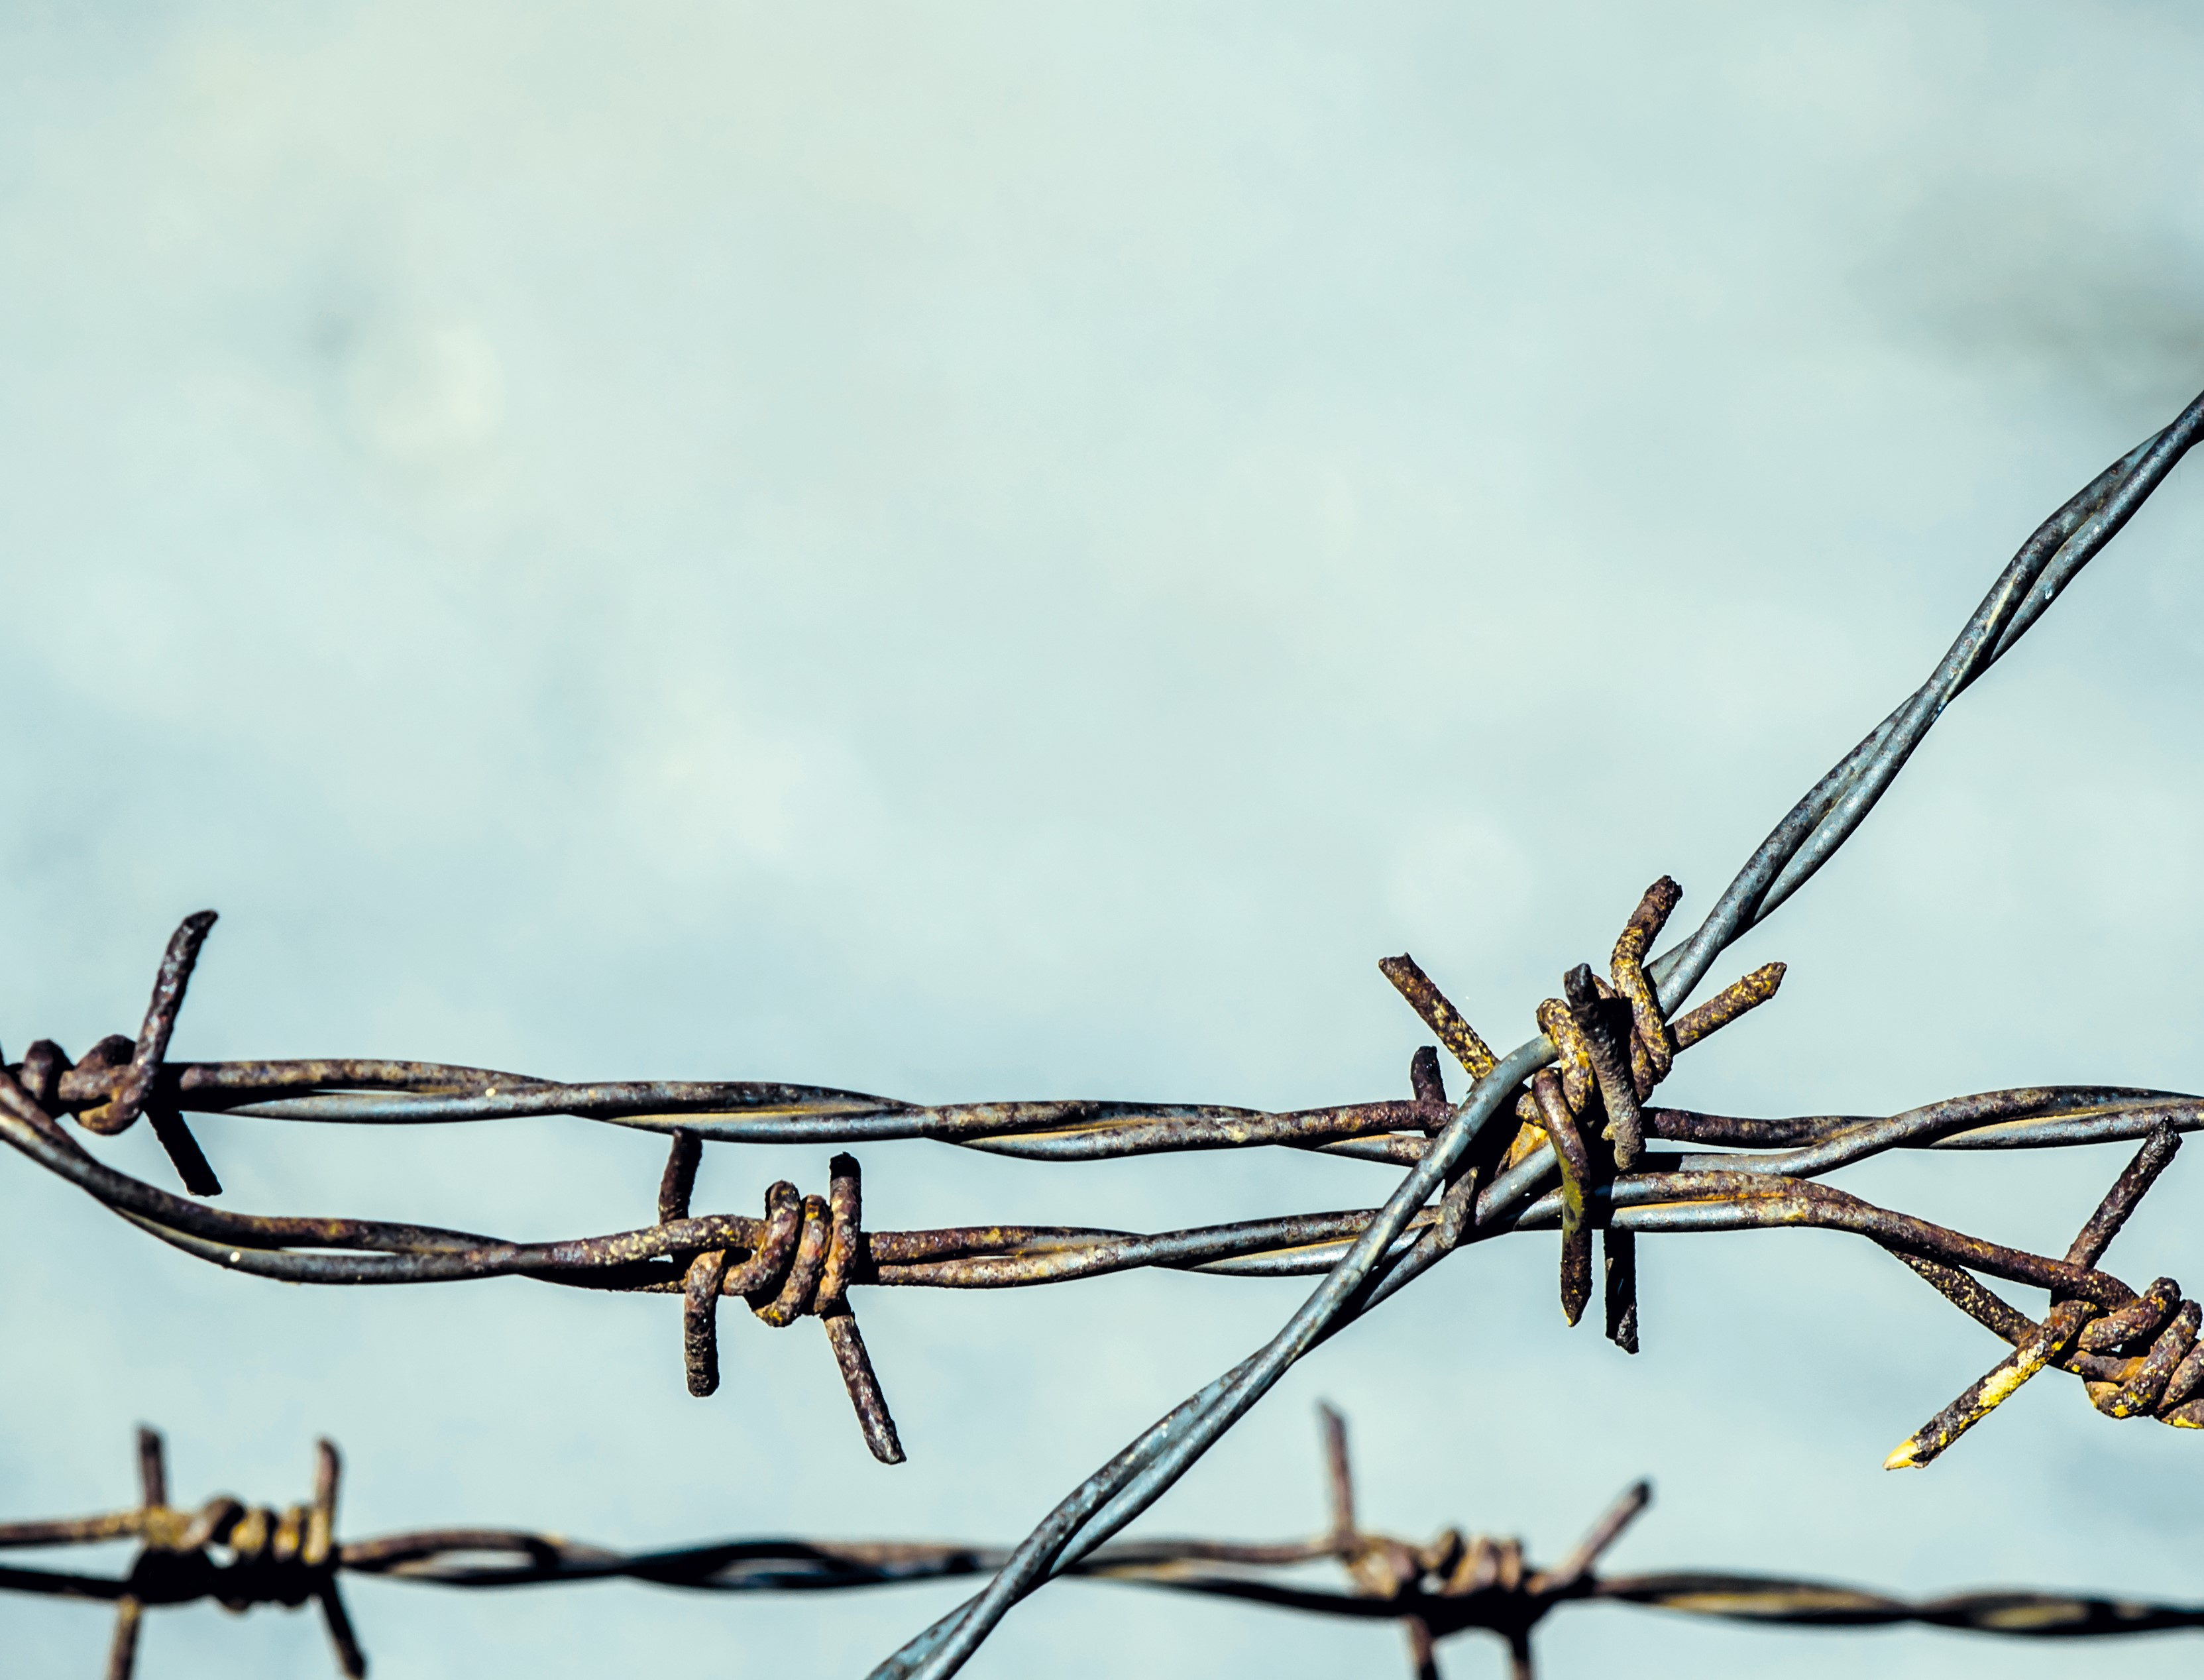 Barbed wire on a cloudy background